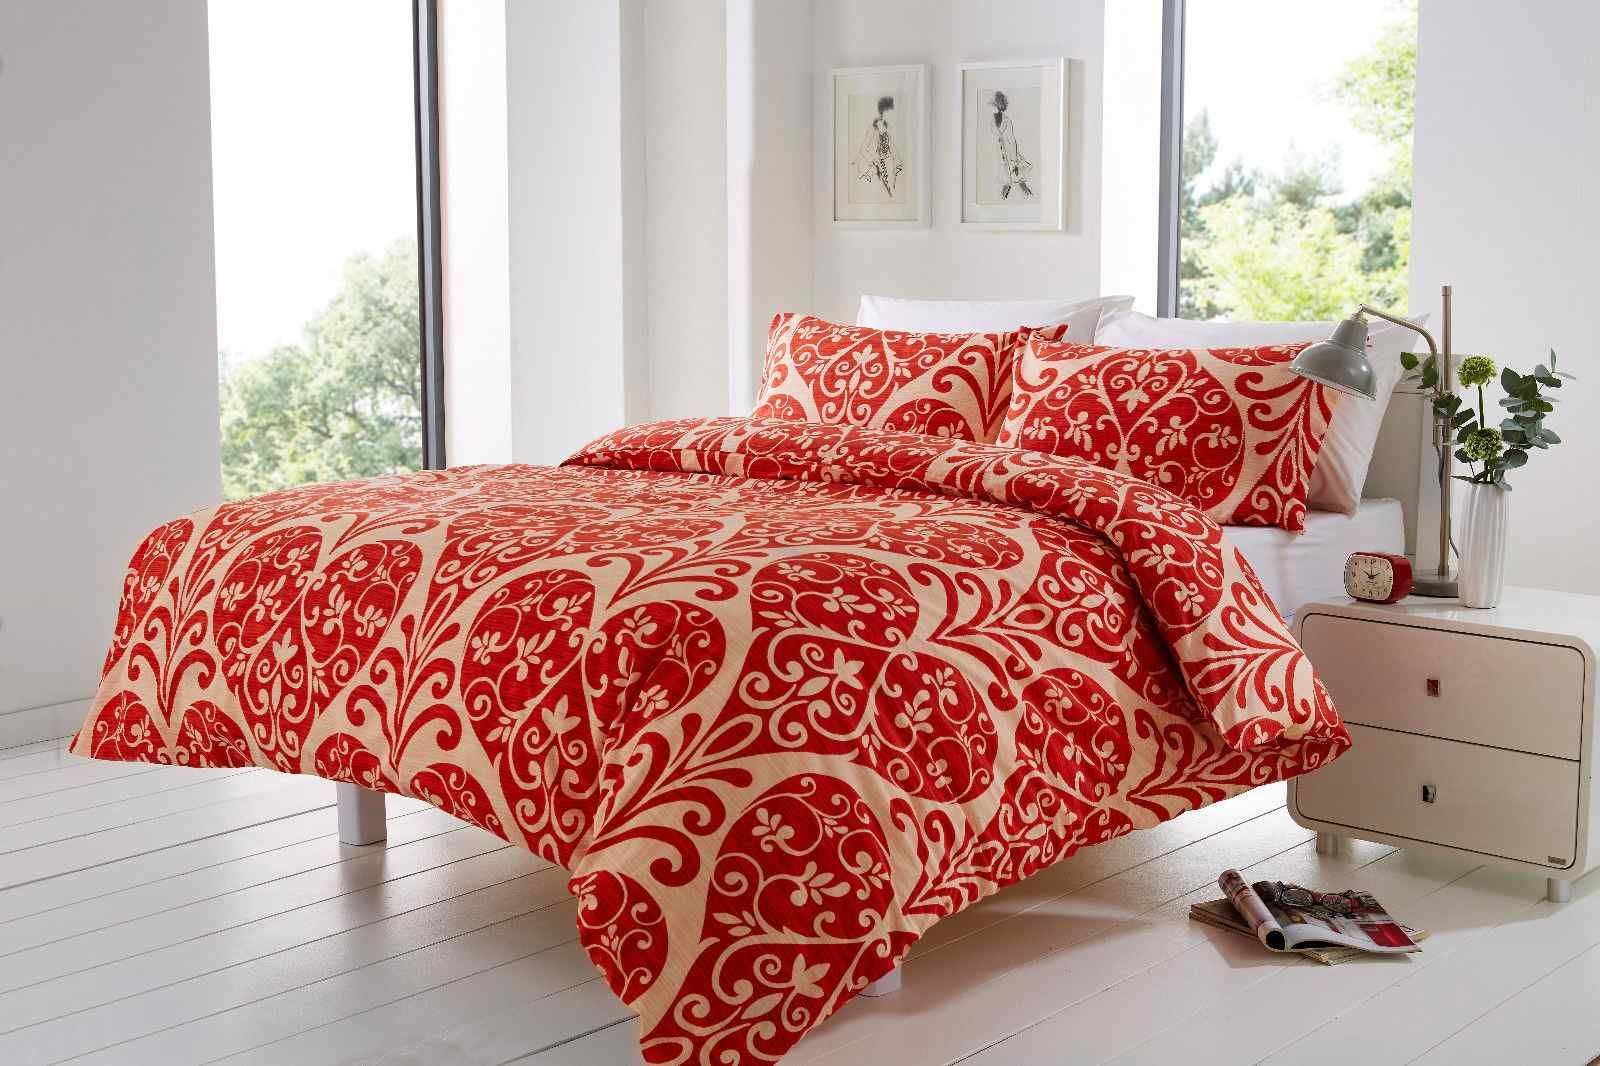 Printed Scarlett Duvet Cover Set Single Double Super King Size With Pillowcases